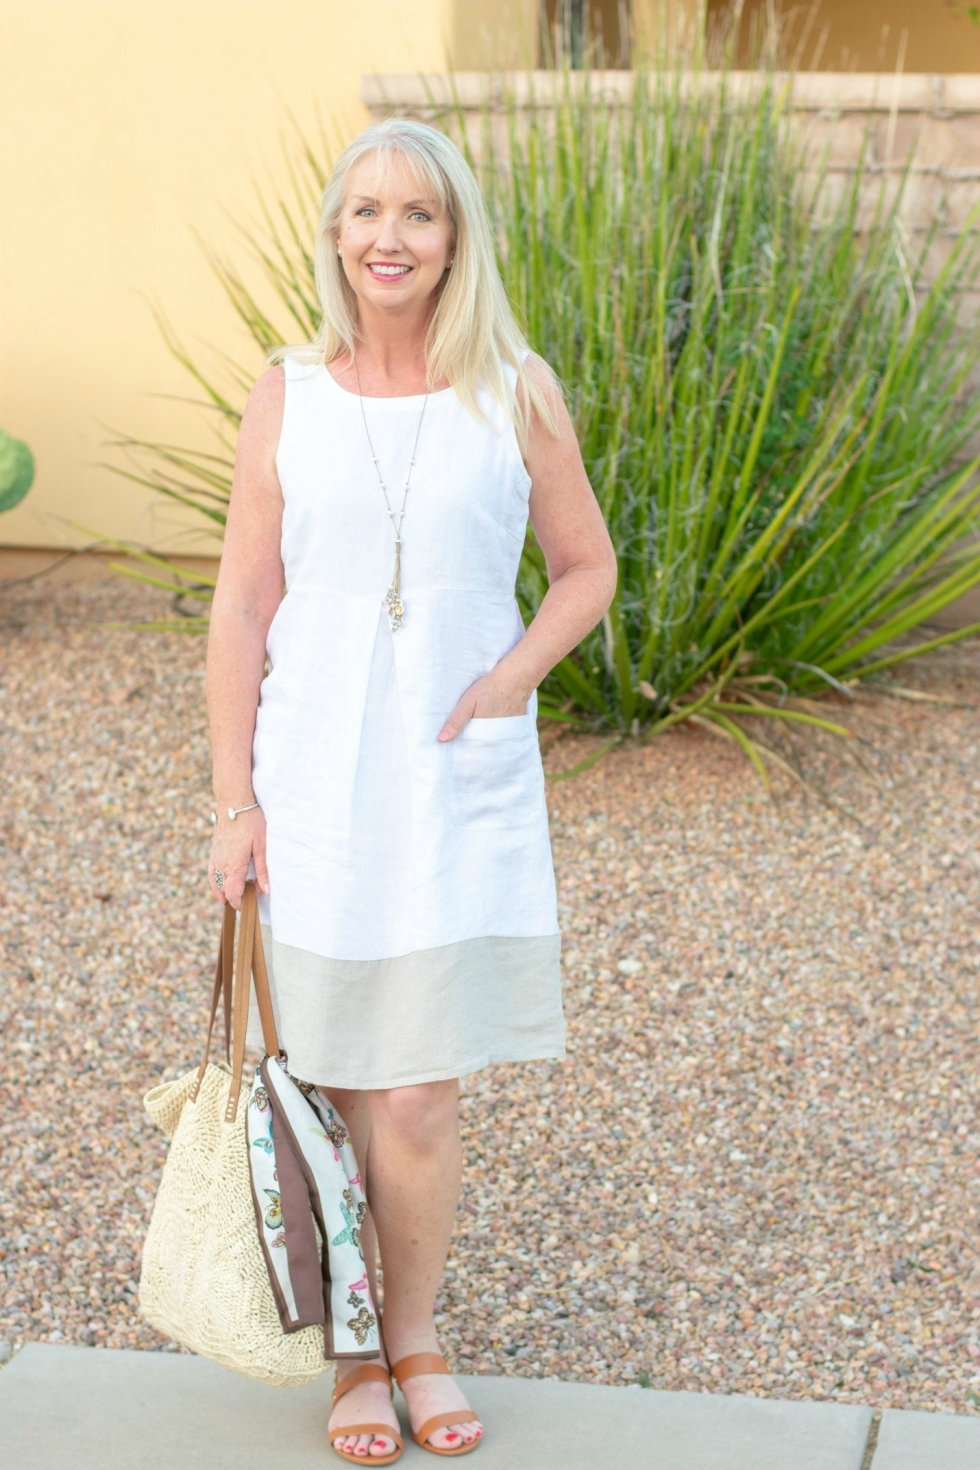 A Linen Summer Dress is a cool and fashionable option for women over 40